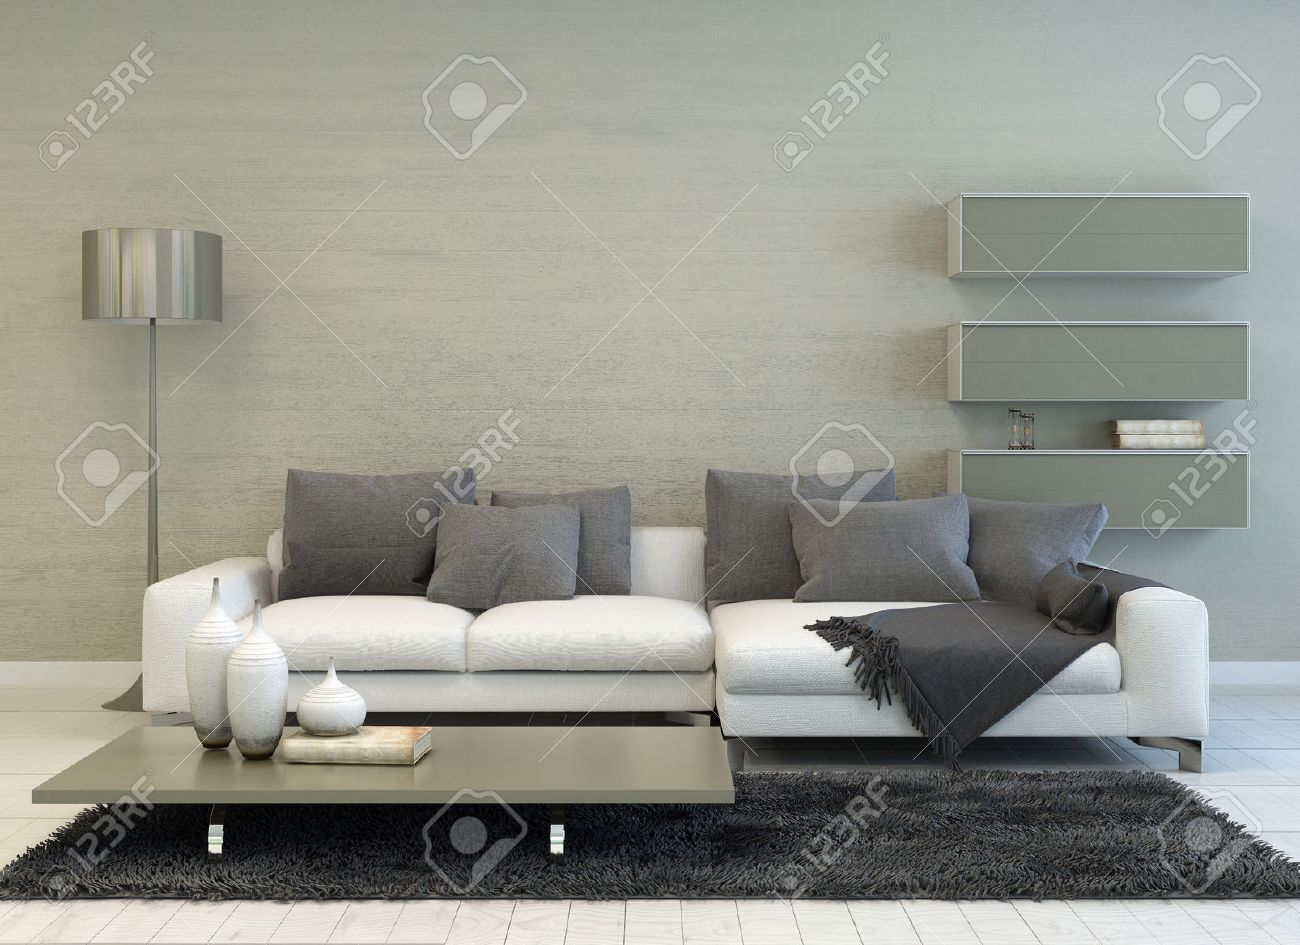 modern grey and white living room with floor lamp sofa coffee table floating shelves hook rack for coats ematic dvd player wall mount bookshelf kmart storage boxes instead